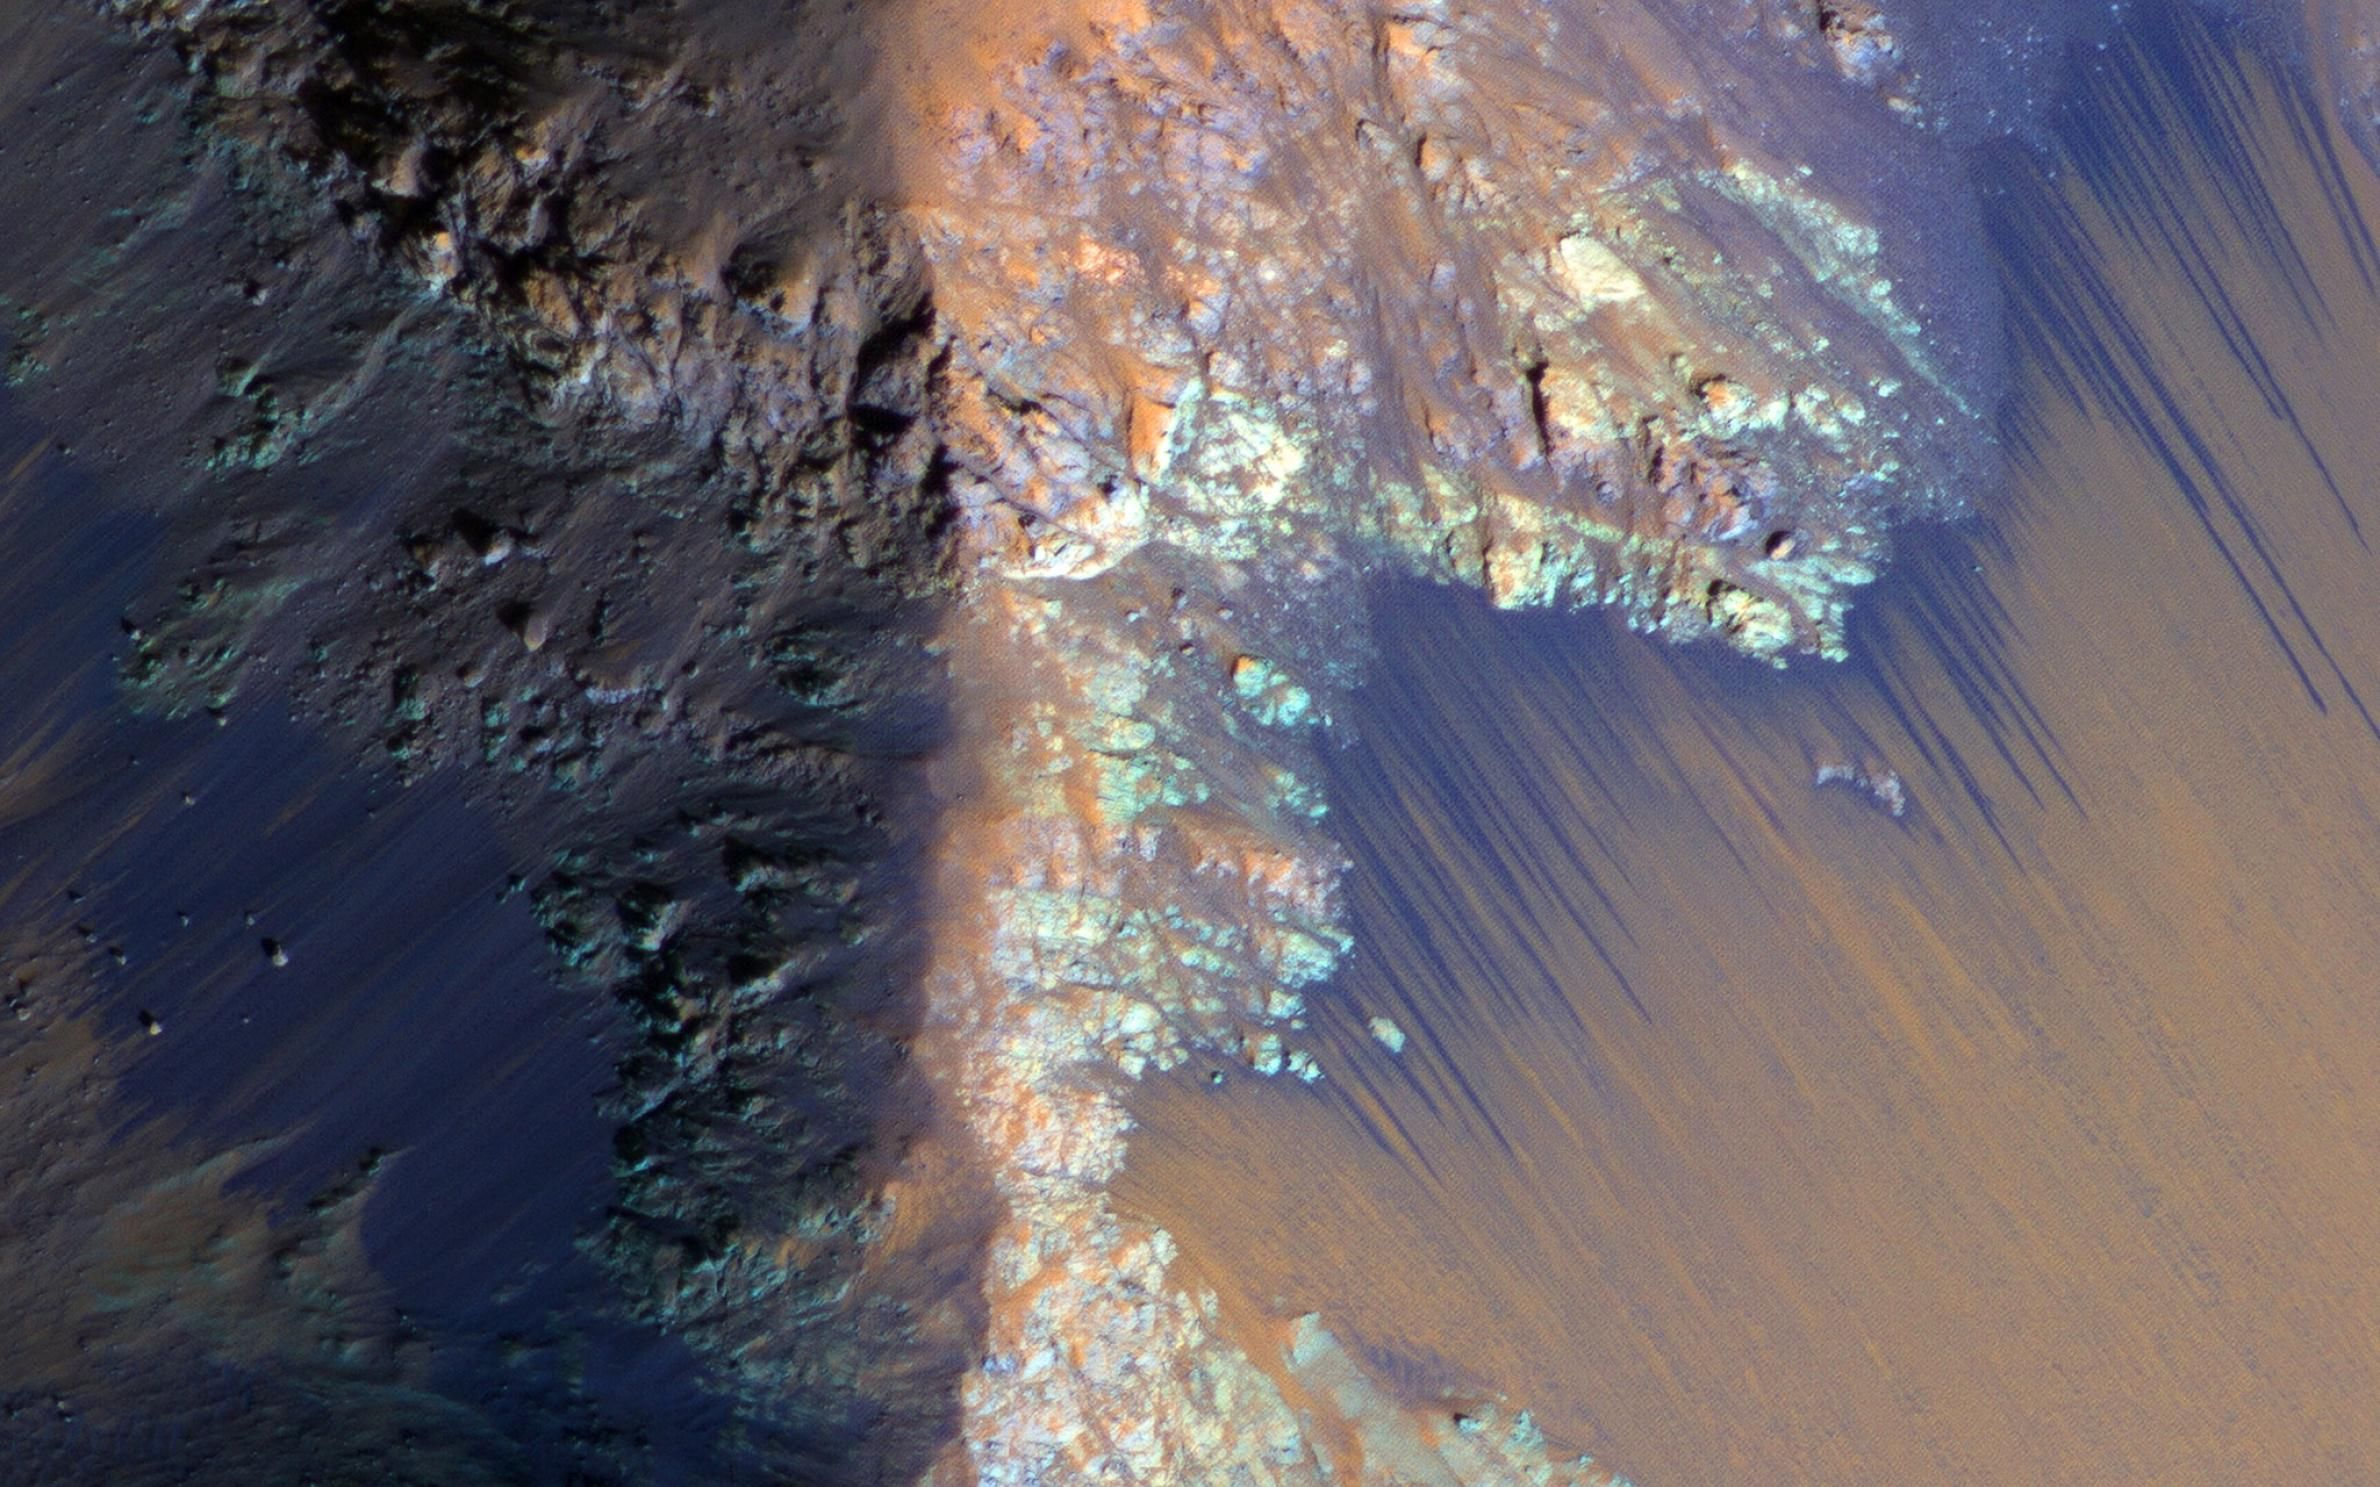 NASA Finds 'Definitive' Liquid Water on Mars Water on